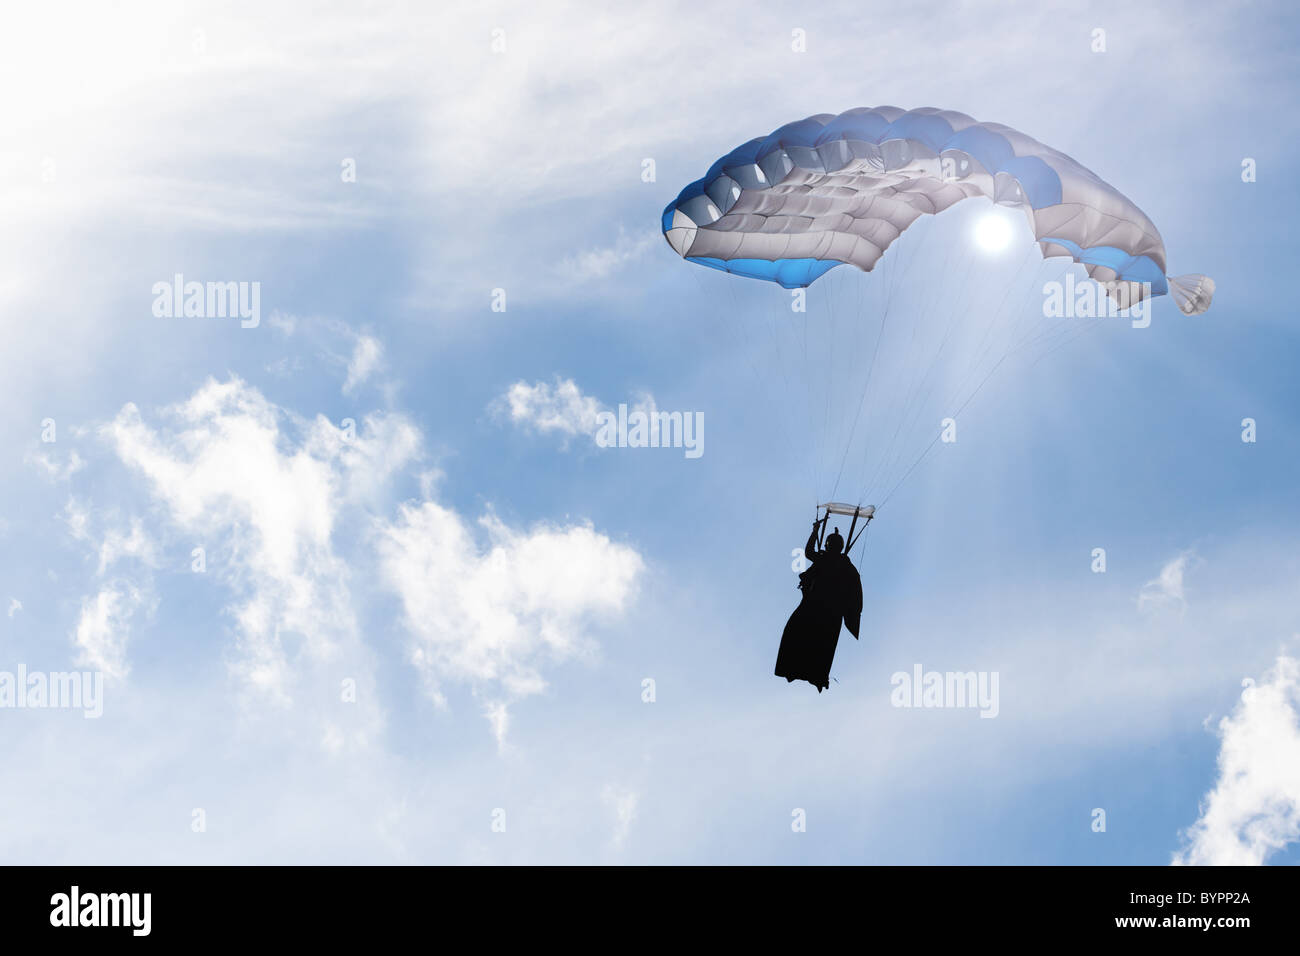 Square parachute canopy in blue sky, in sun rays, inflated, with skydiver silhouette in wingsuit. - Stock Image